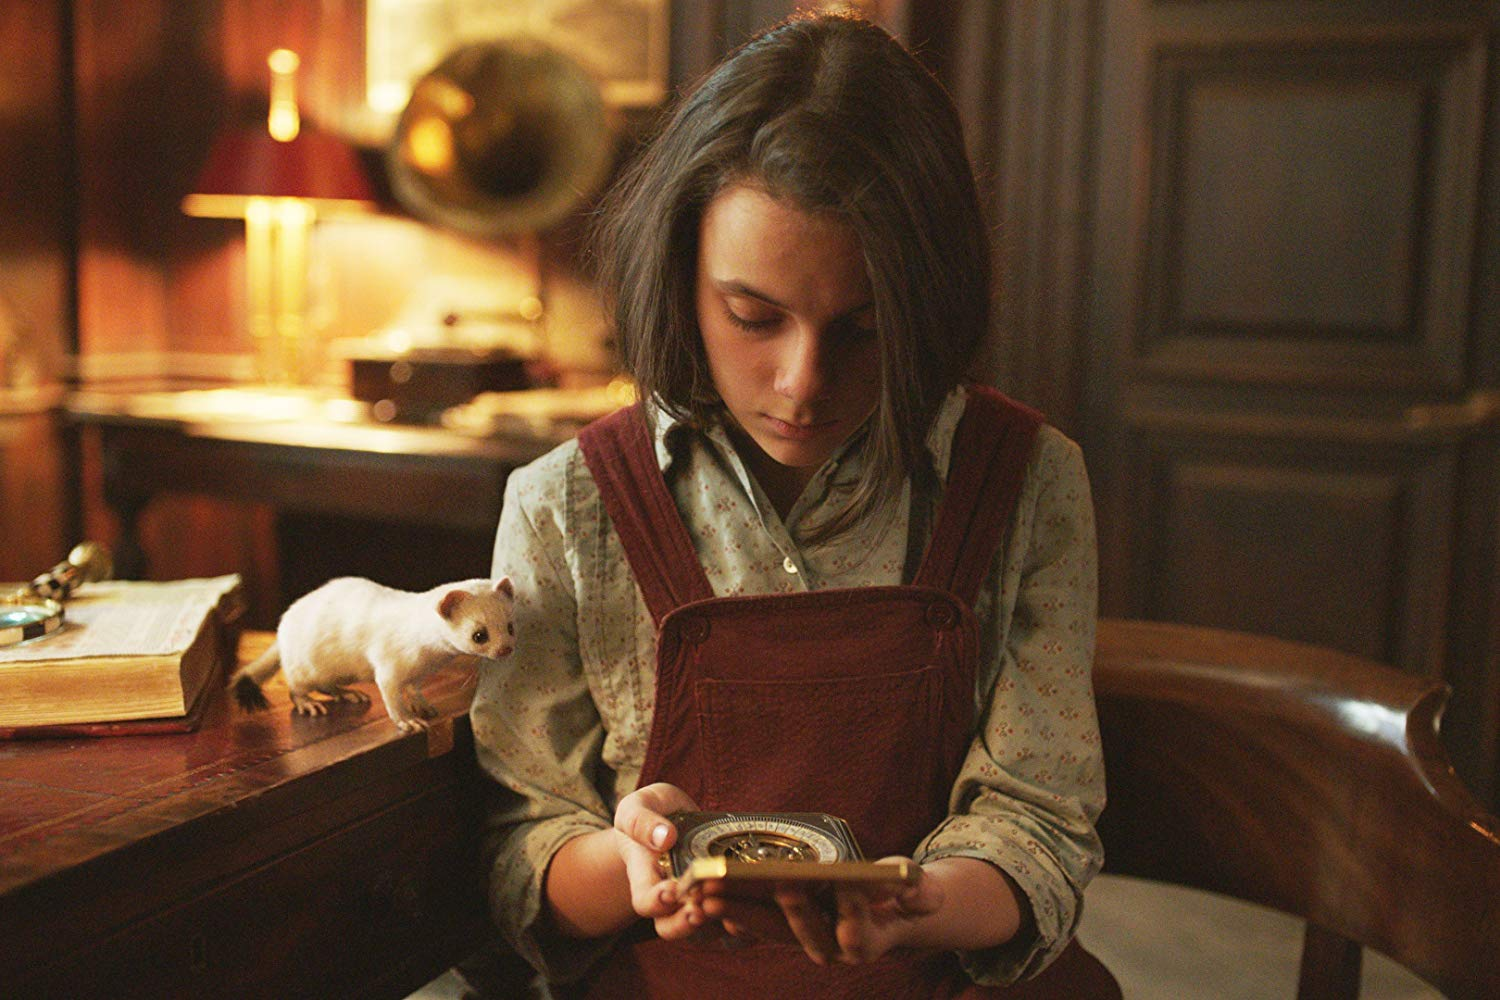 [News] HIS DARK MATERIALS Will Arrive This November on HBO